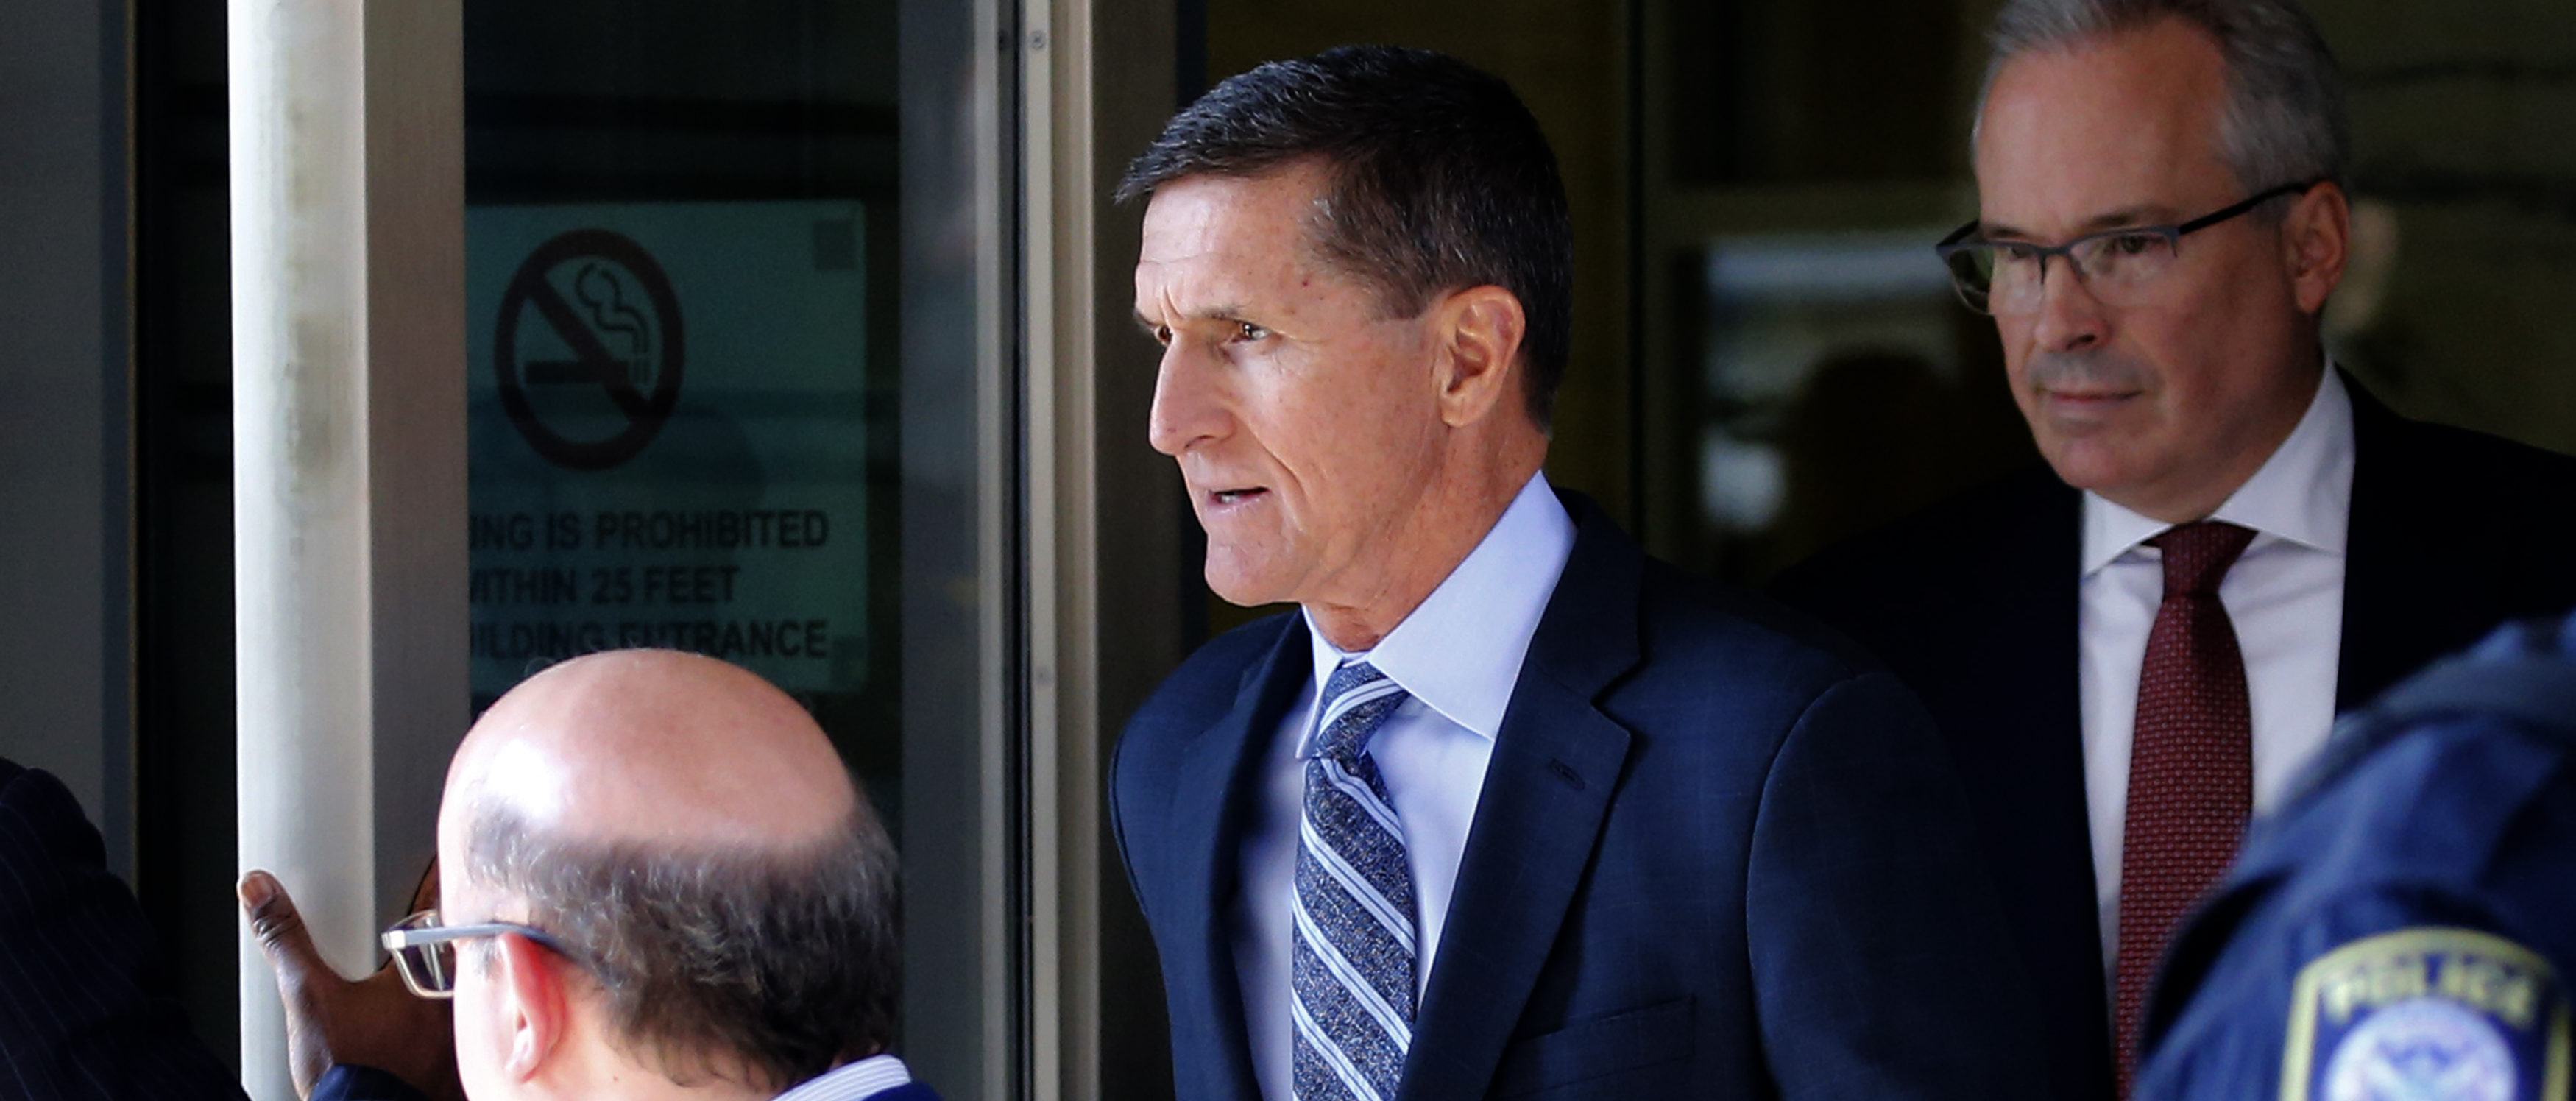 Michael Flynn May Have To Testify In Order To Withdraw Guilty Plea